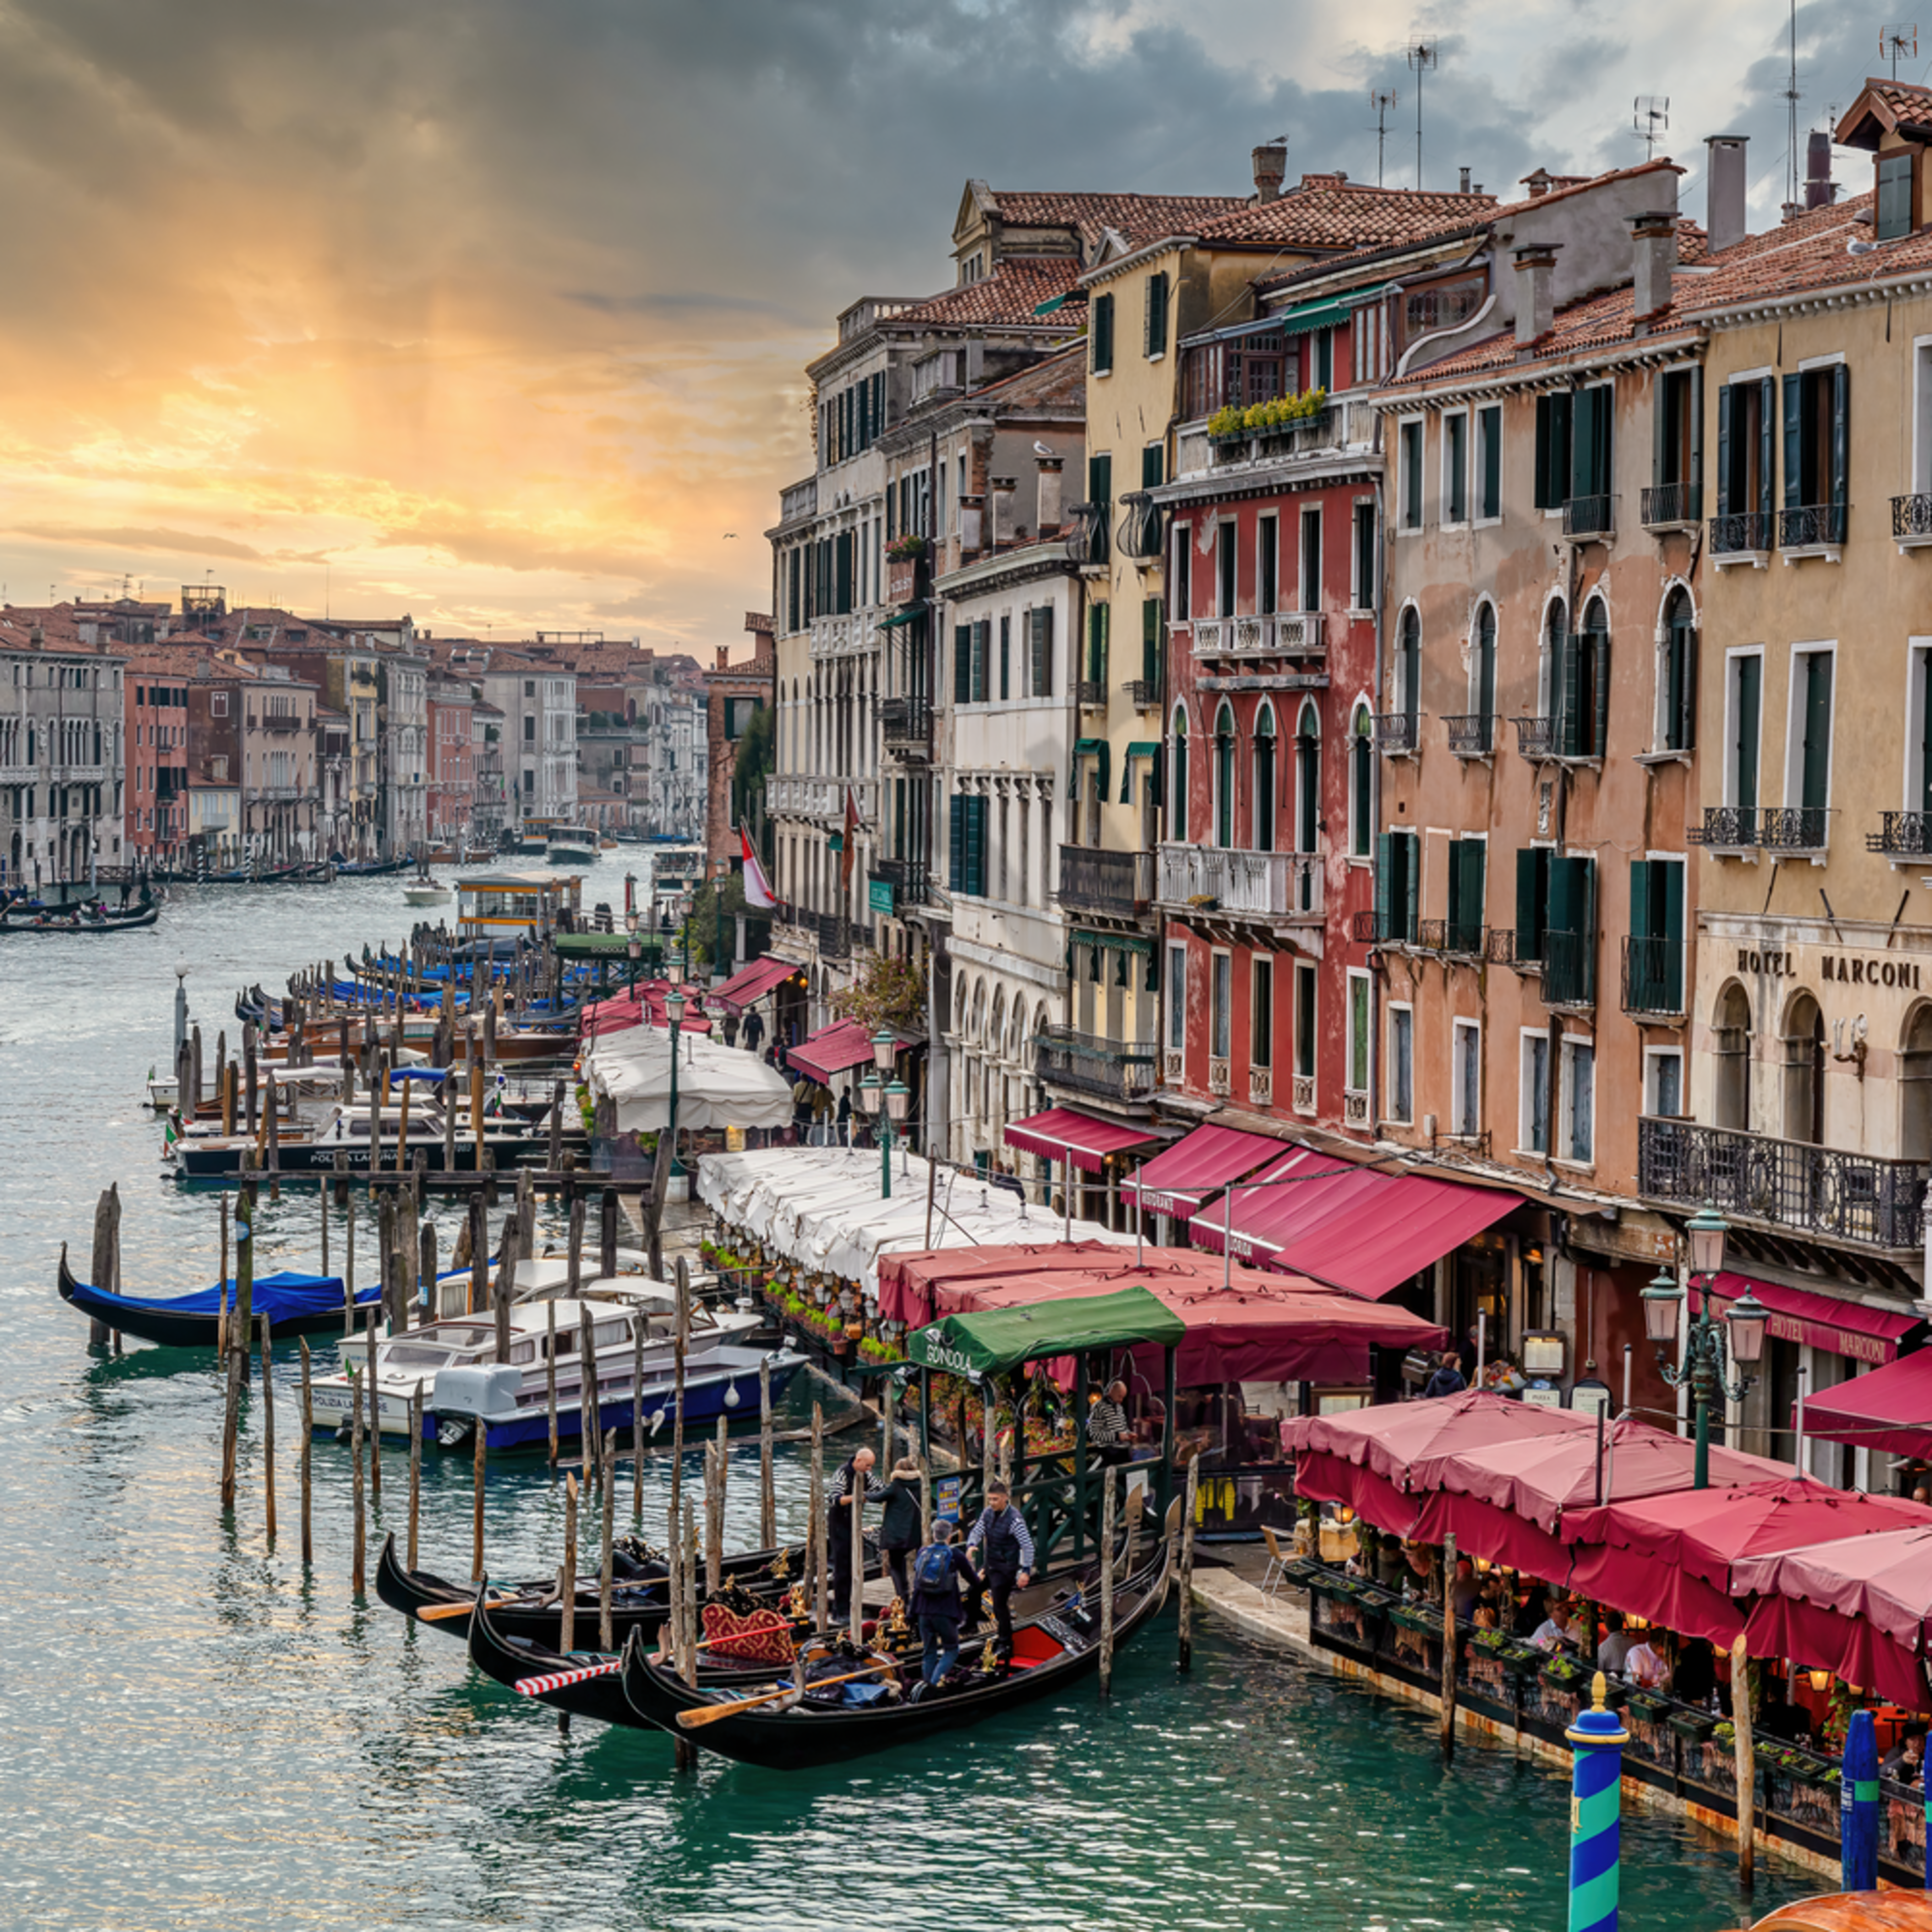 Grand canal and rialto bridge overlook with sunset italy hbmkrz